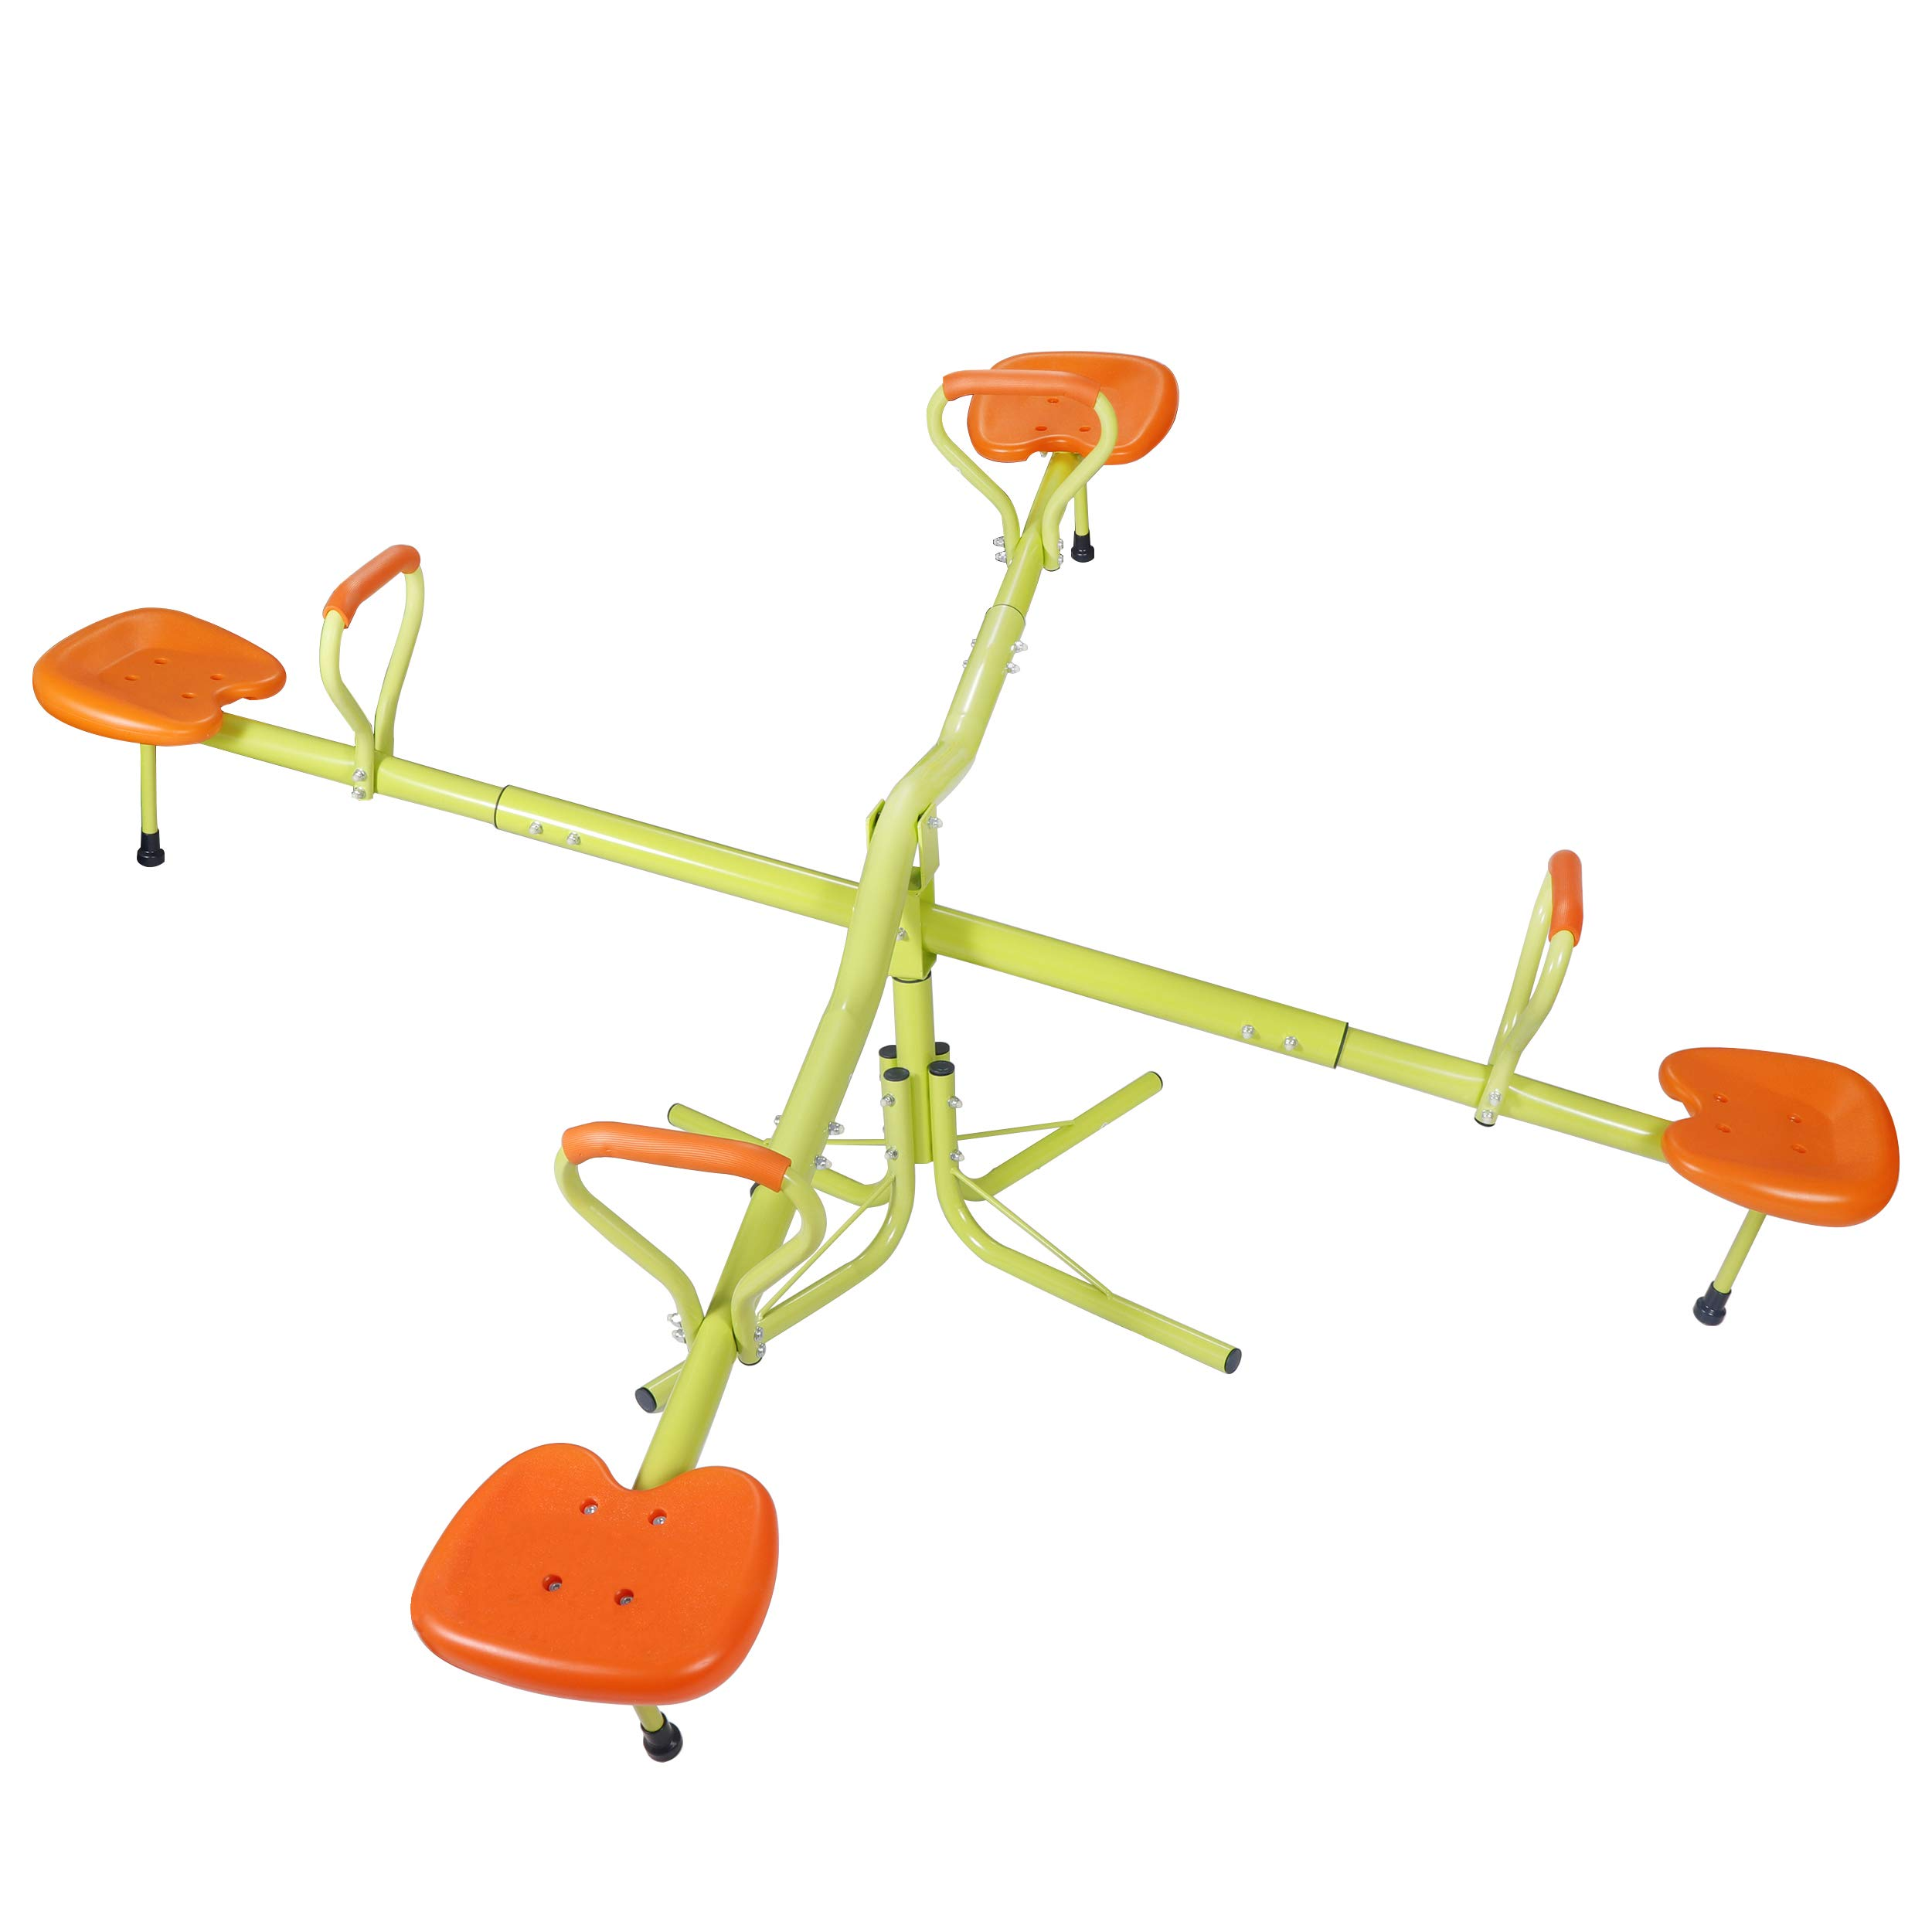 ZENY Kids Seesaw Swivel Teeter-Totter 360 Degree Rotation Outdoor Playground Spinning Ride On Toys for 4 Children by ZENY